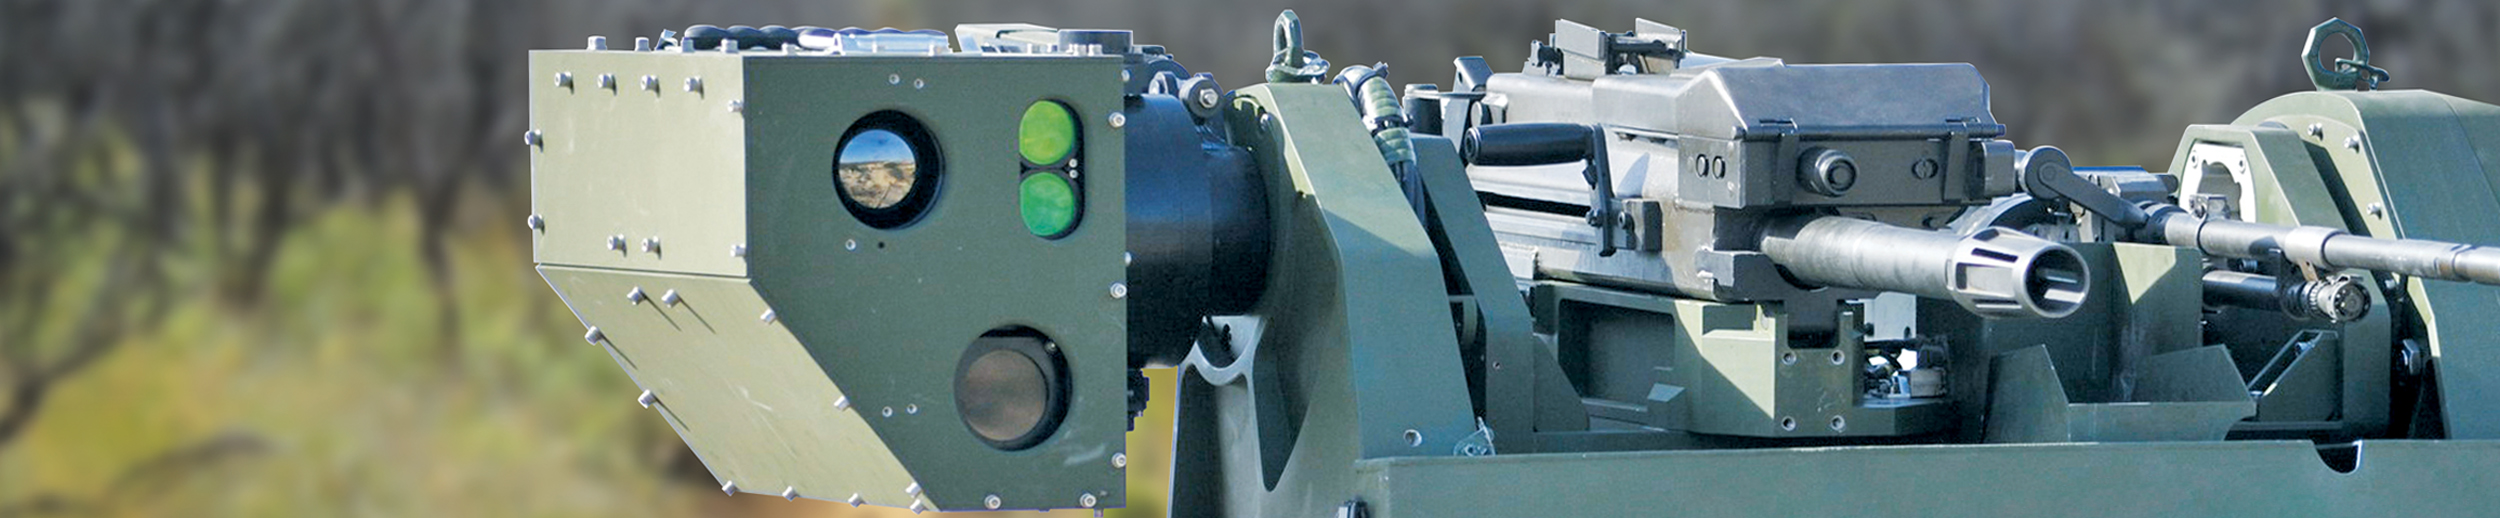 Thermal sights for remote weapon systems